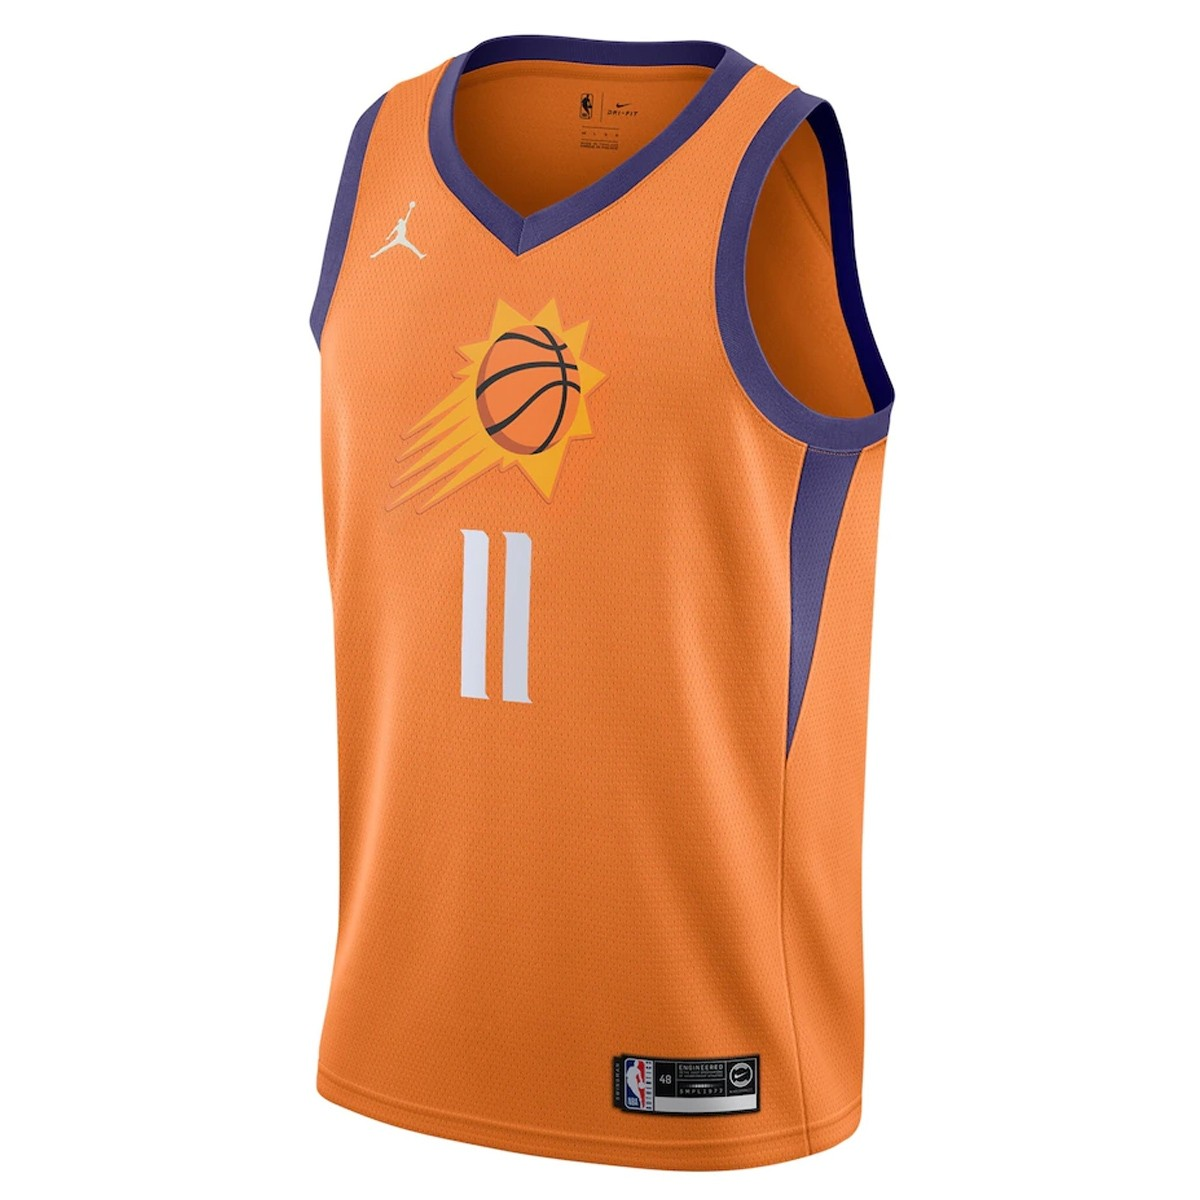 Jordan Jr NBA Phoenix Suns Swingman Jersey Ricky Rubio 'Statement Edition'